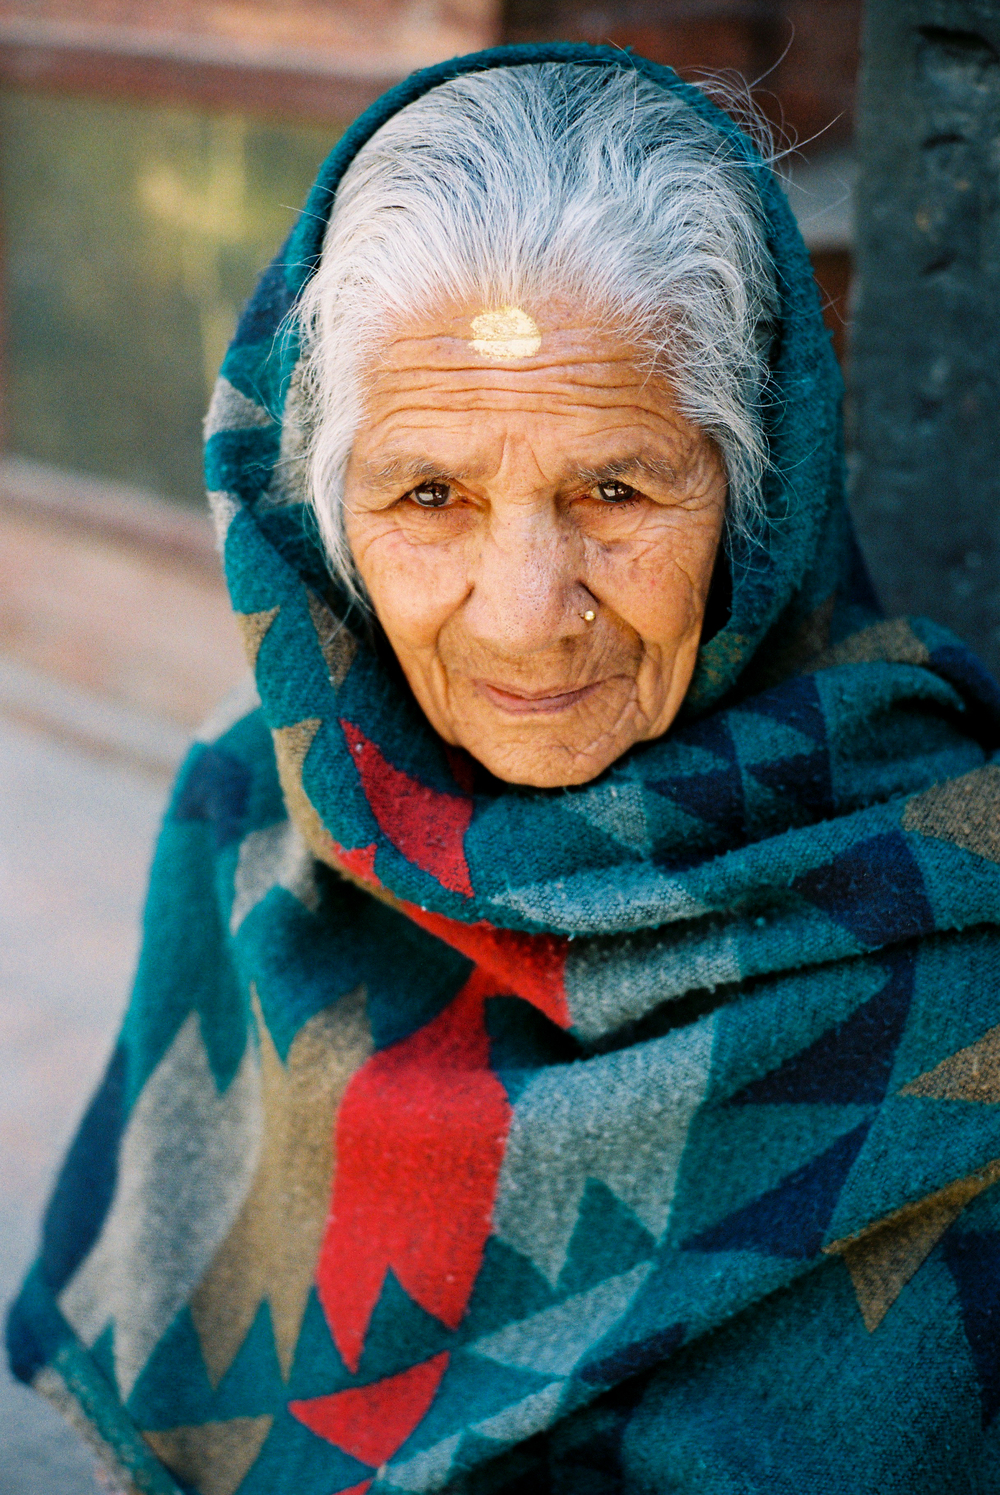 Faces of Nepal - Leica M6